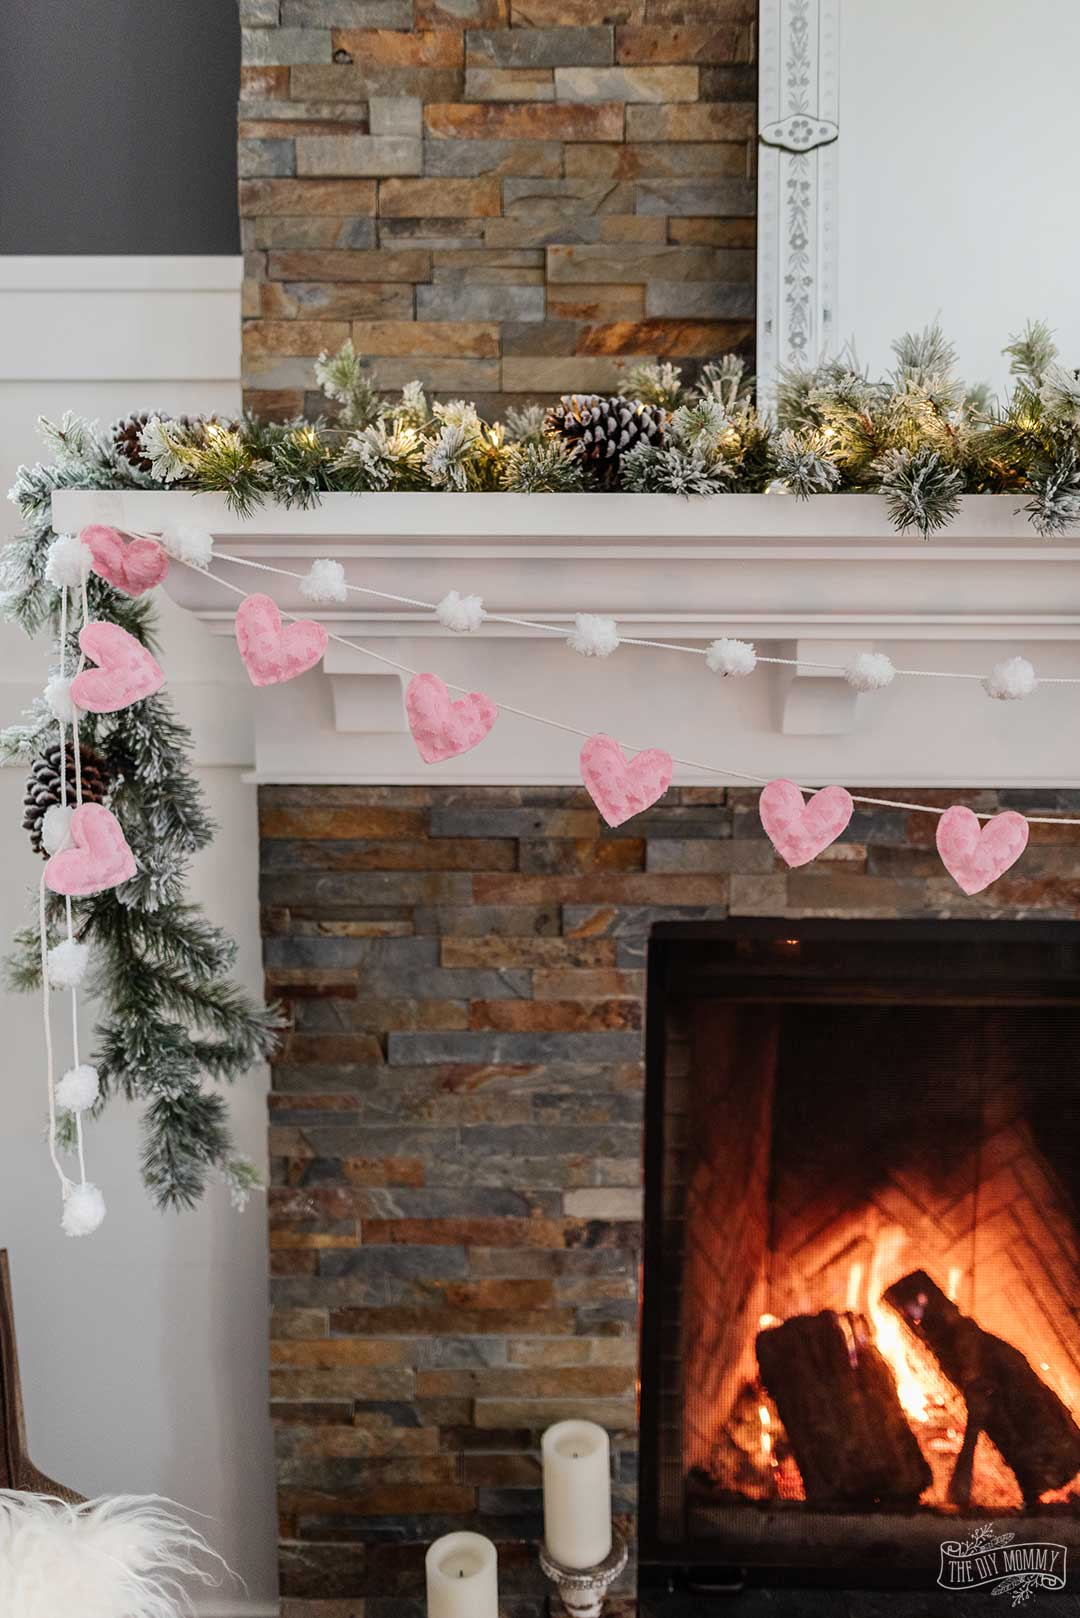 This DIY no-sew fabric heart banner is a sweet decor accent for Valentine's Day. The best part? It only takes 30 minutes to make and it doesn't require any sewing at all.